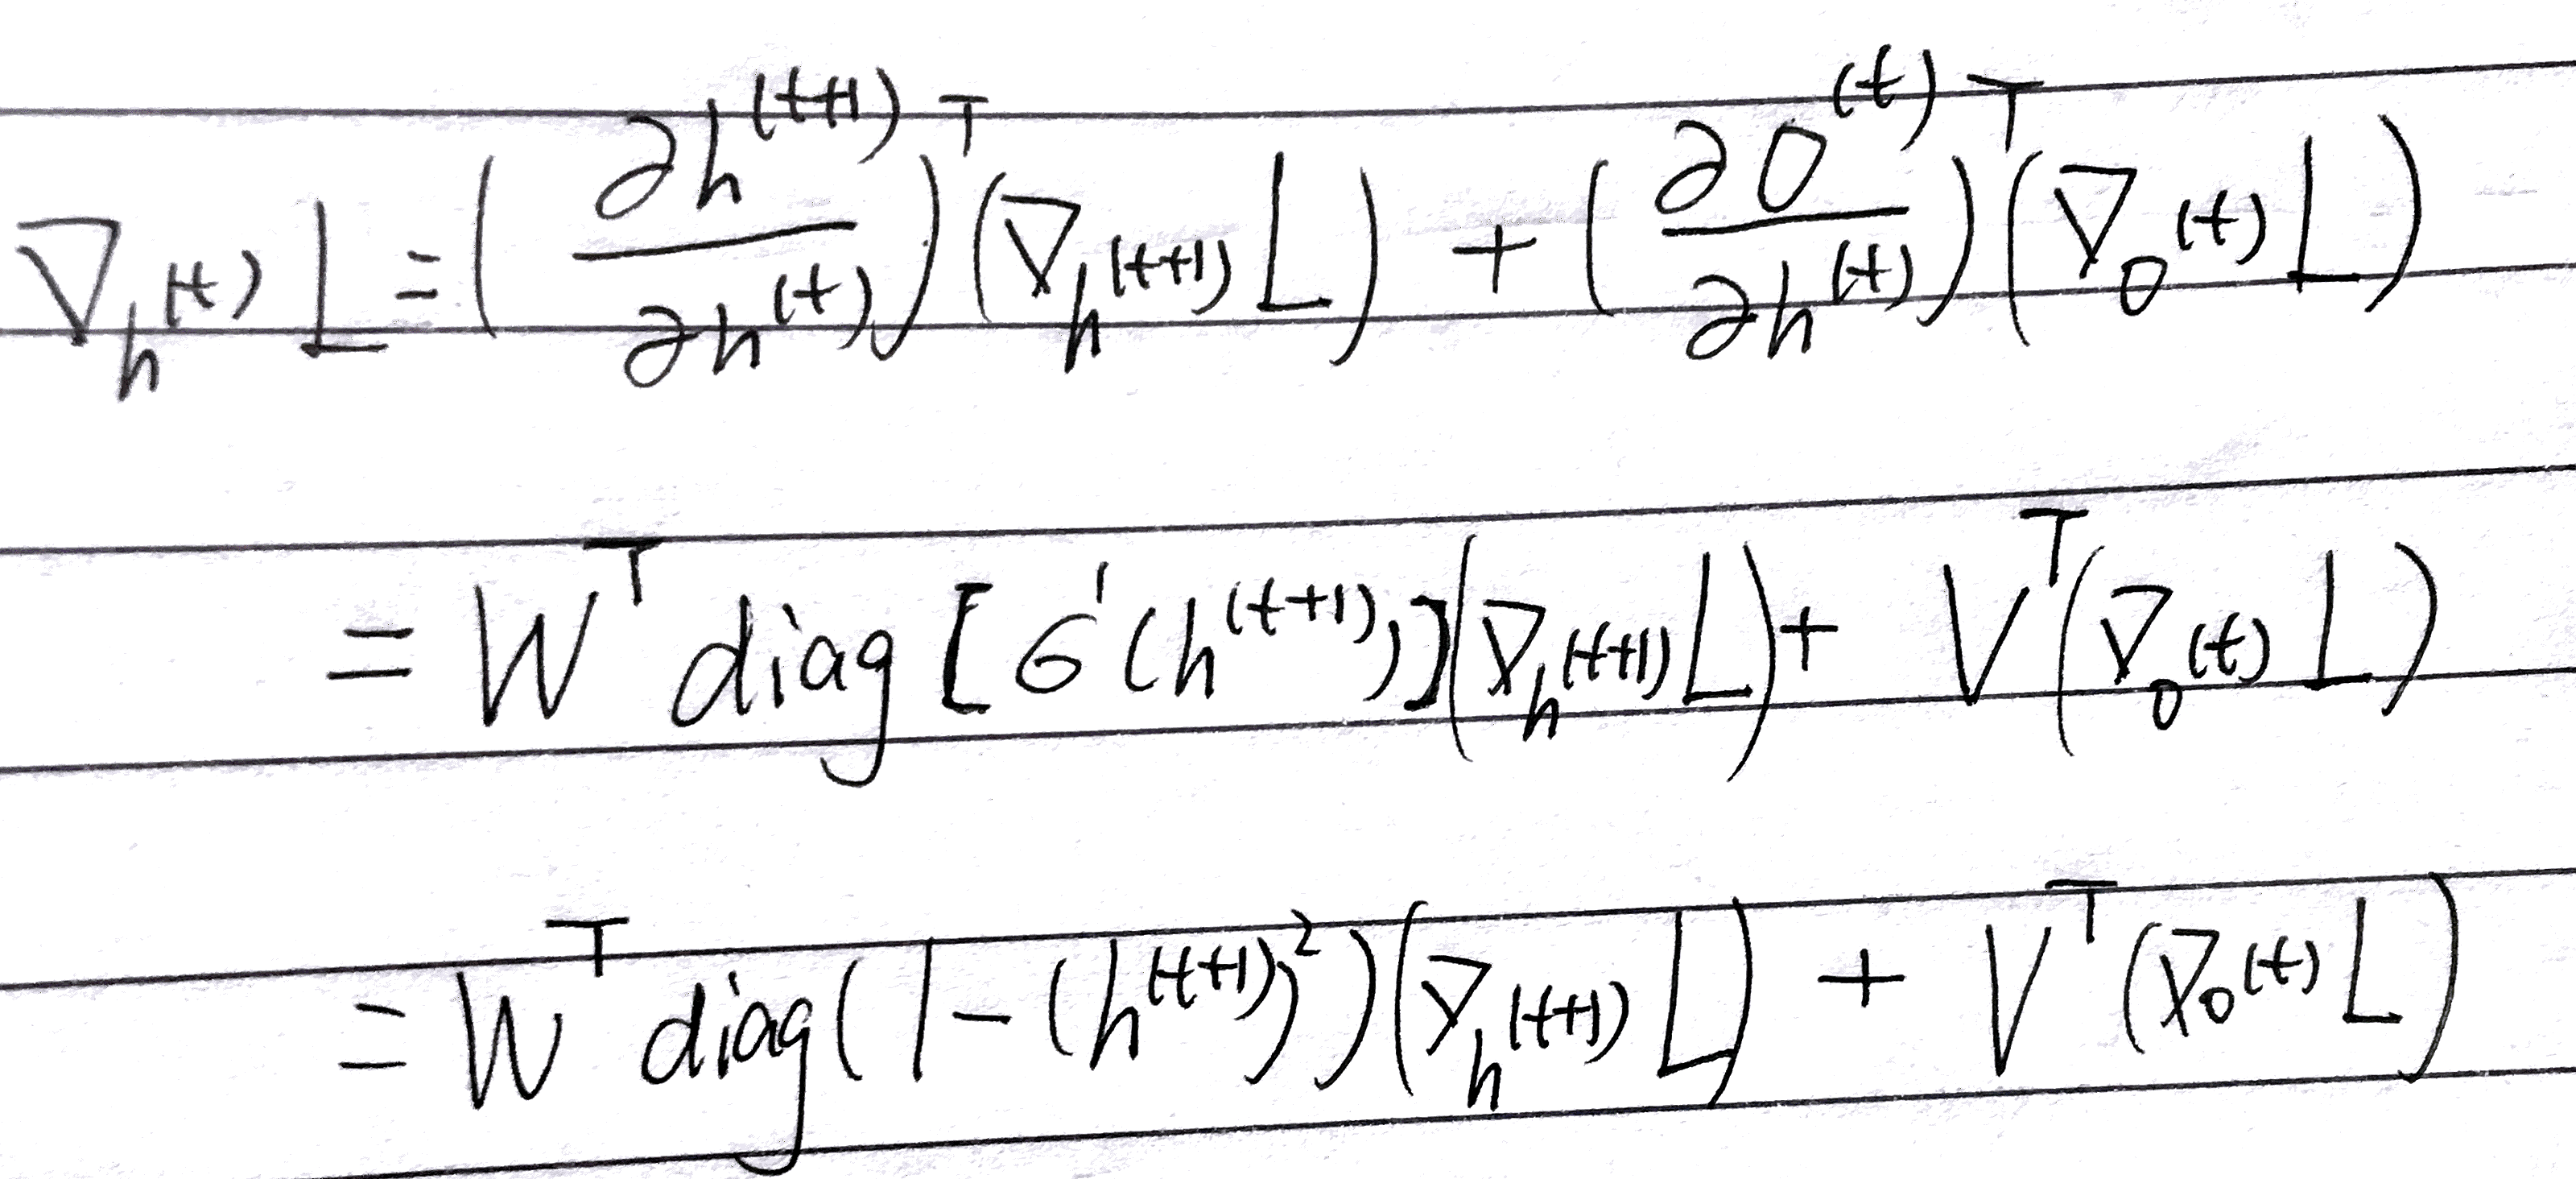 Derivative of h-t